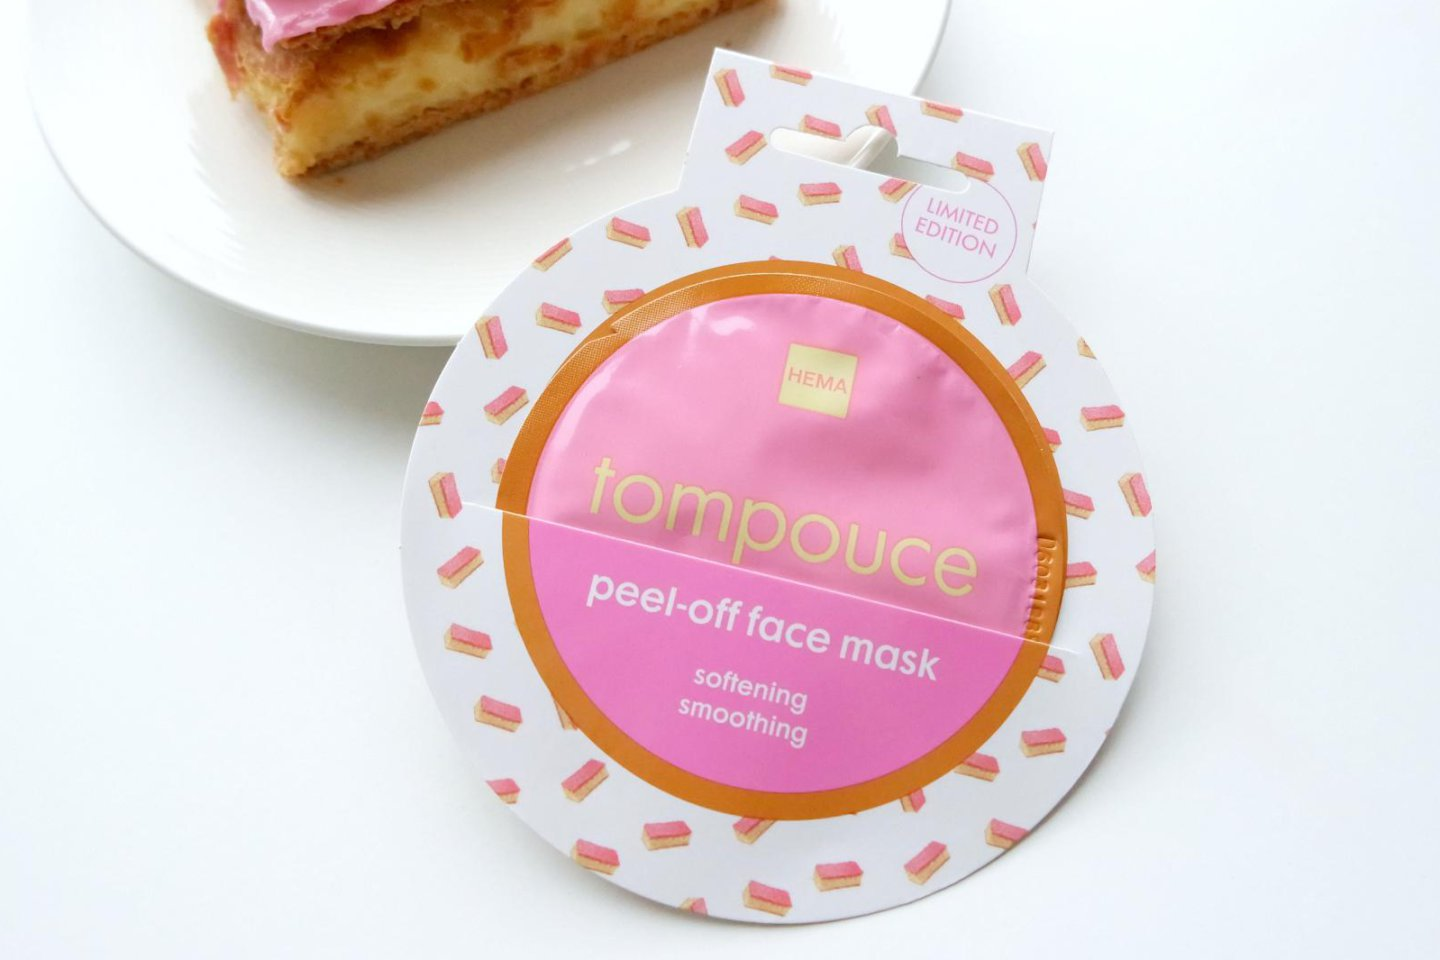 Hema Peel-off face mask Tompouce limited edition